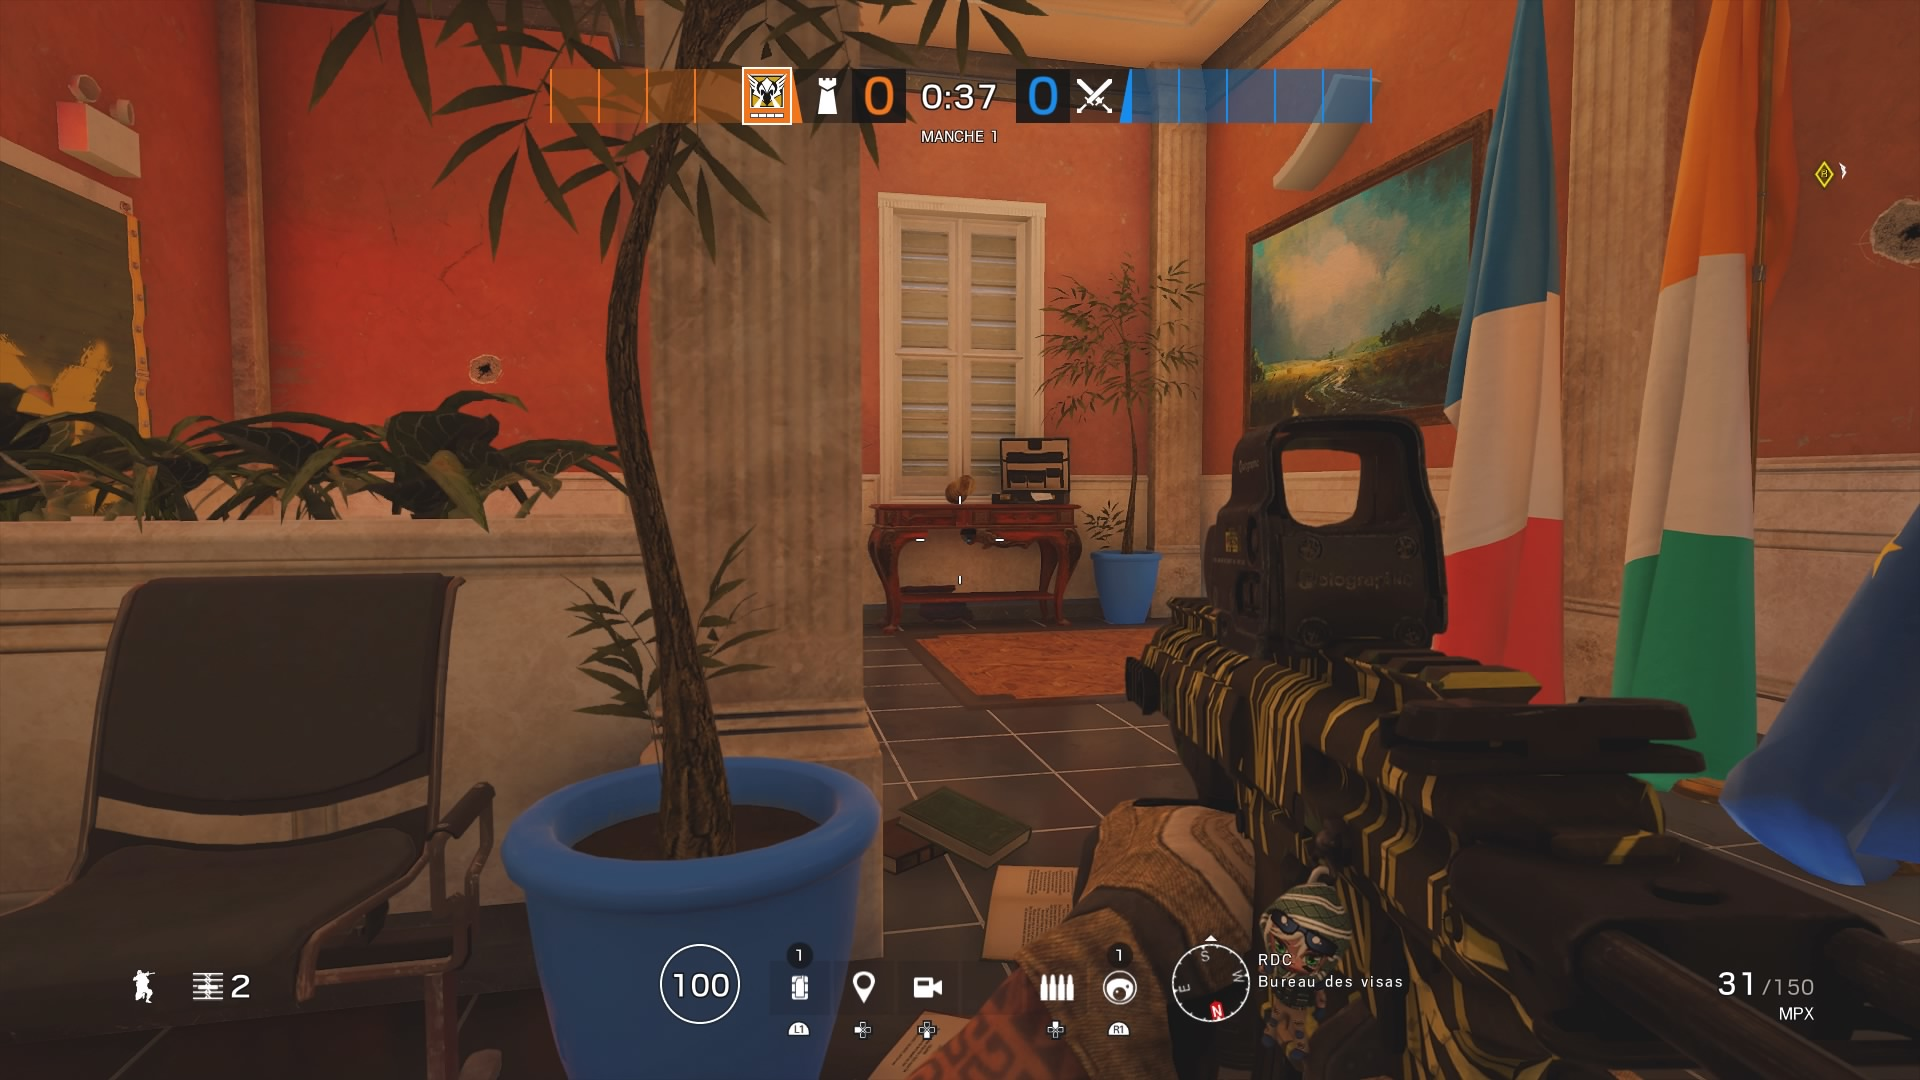 tom_clancy_s_rainbow_six_r_siege_20190714114456.jpg